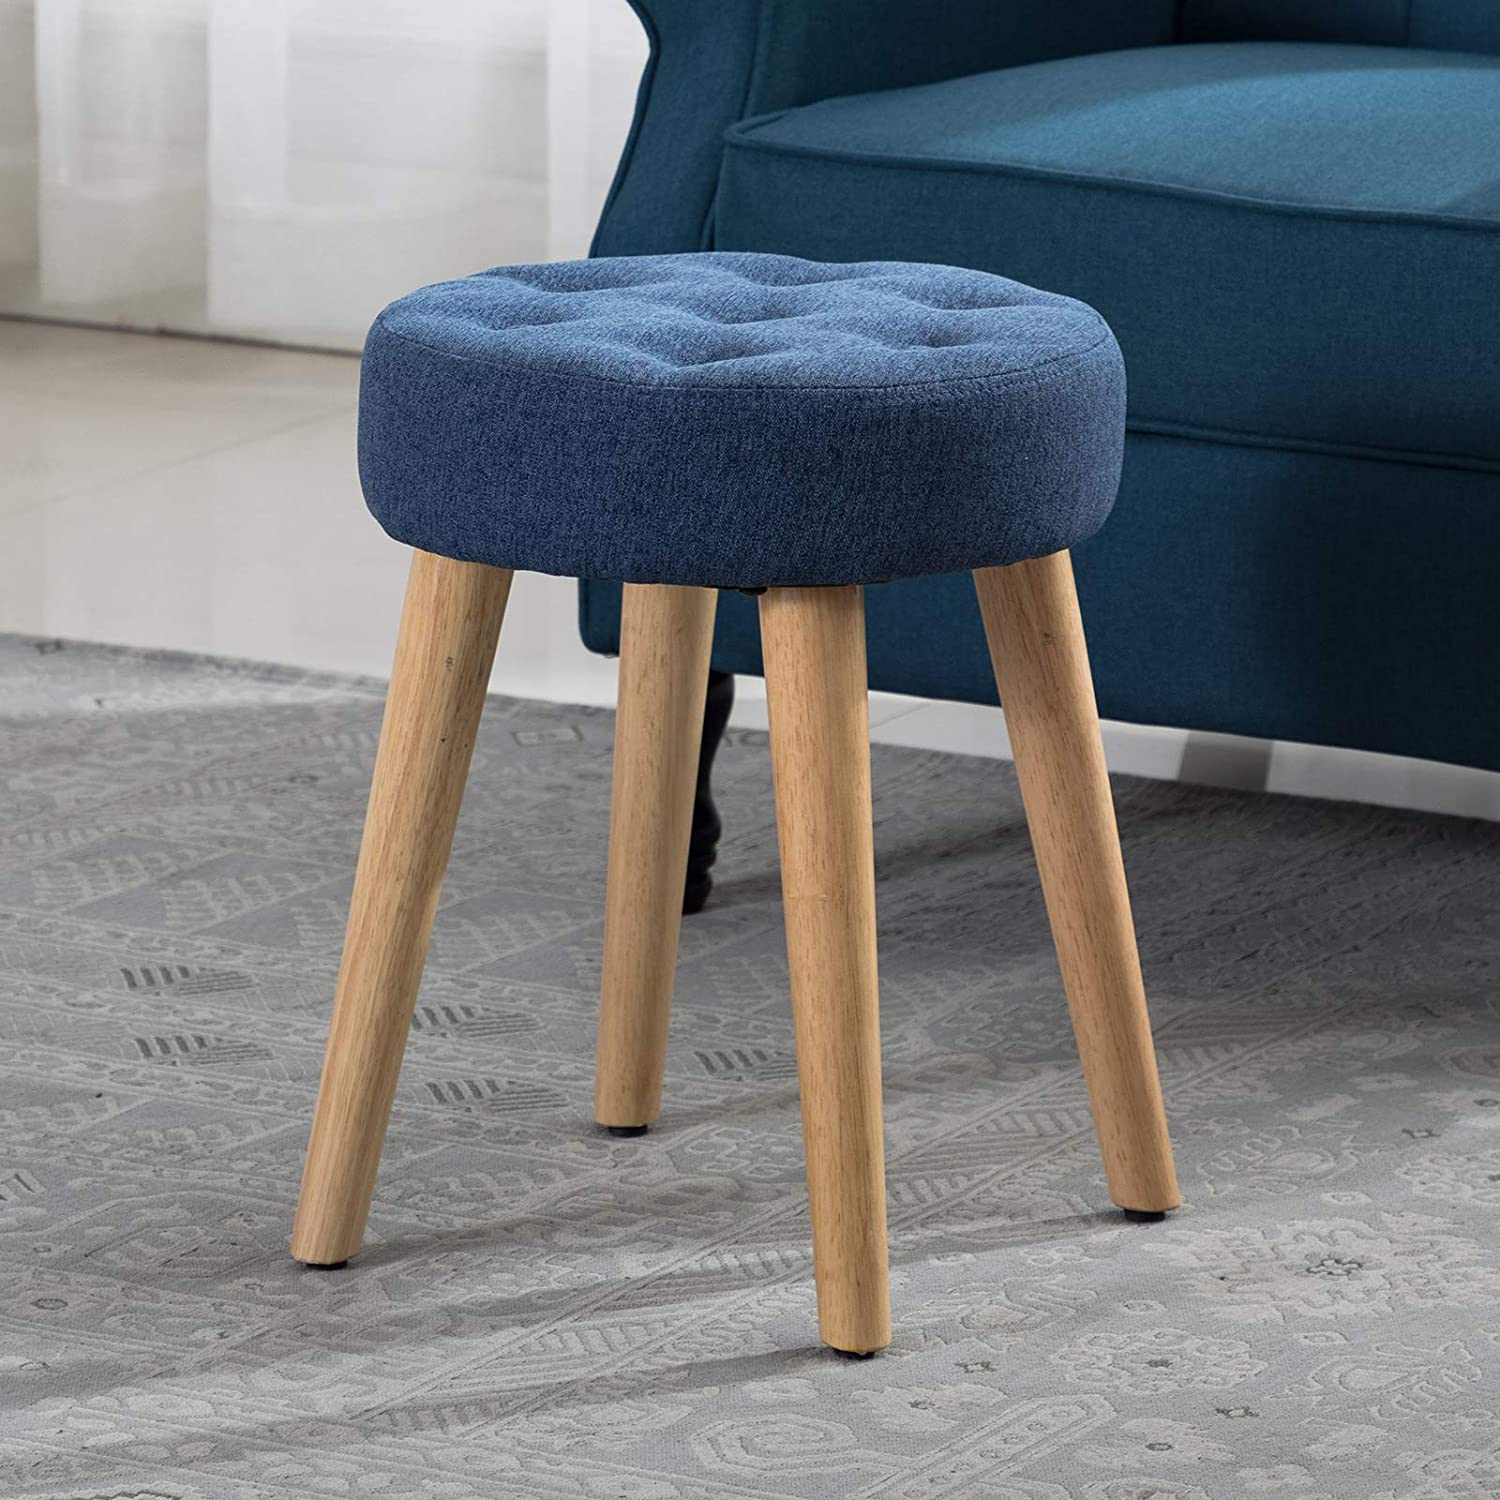 Artechworks Thick Padded Round Footrest Ottoman, Makeup Stool with Wooden  Legs for Living Room, Bedroom, Blue